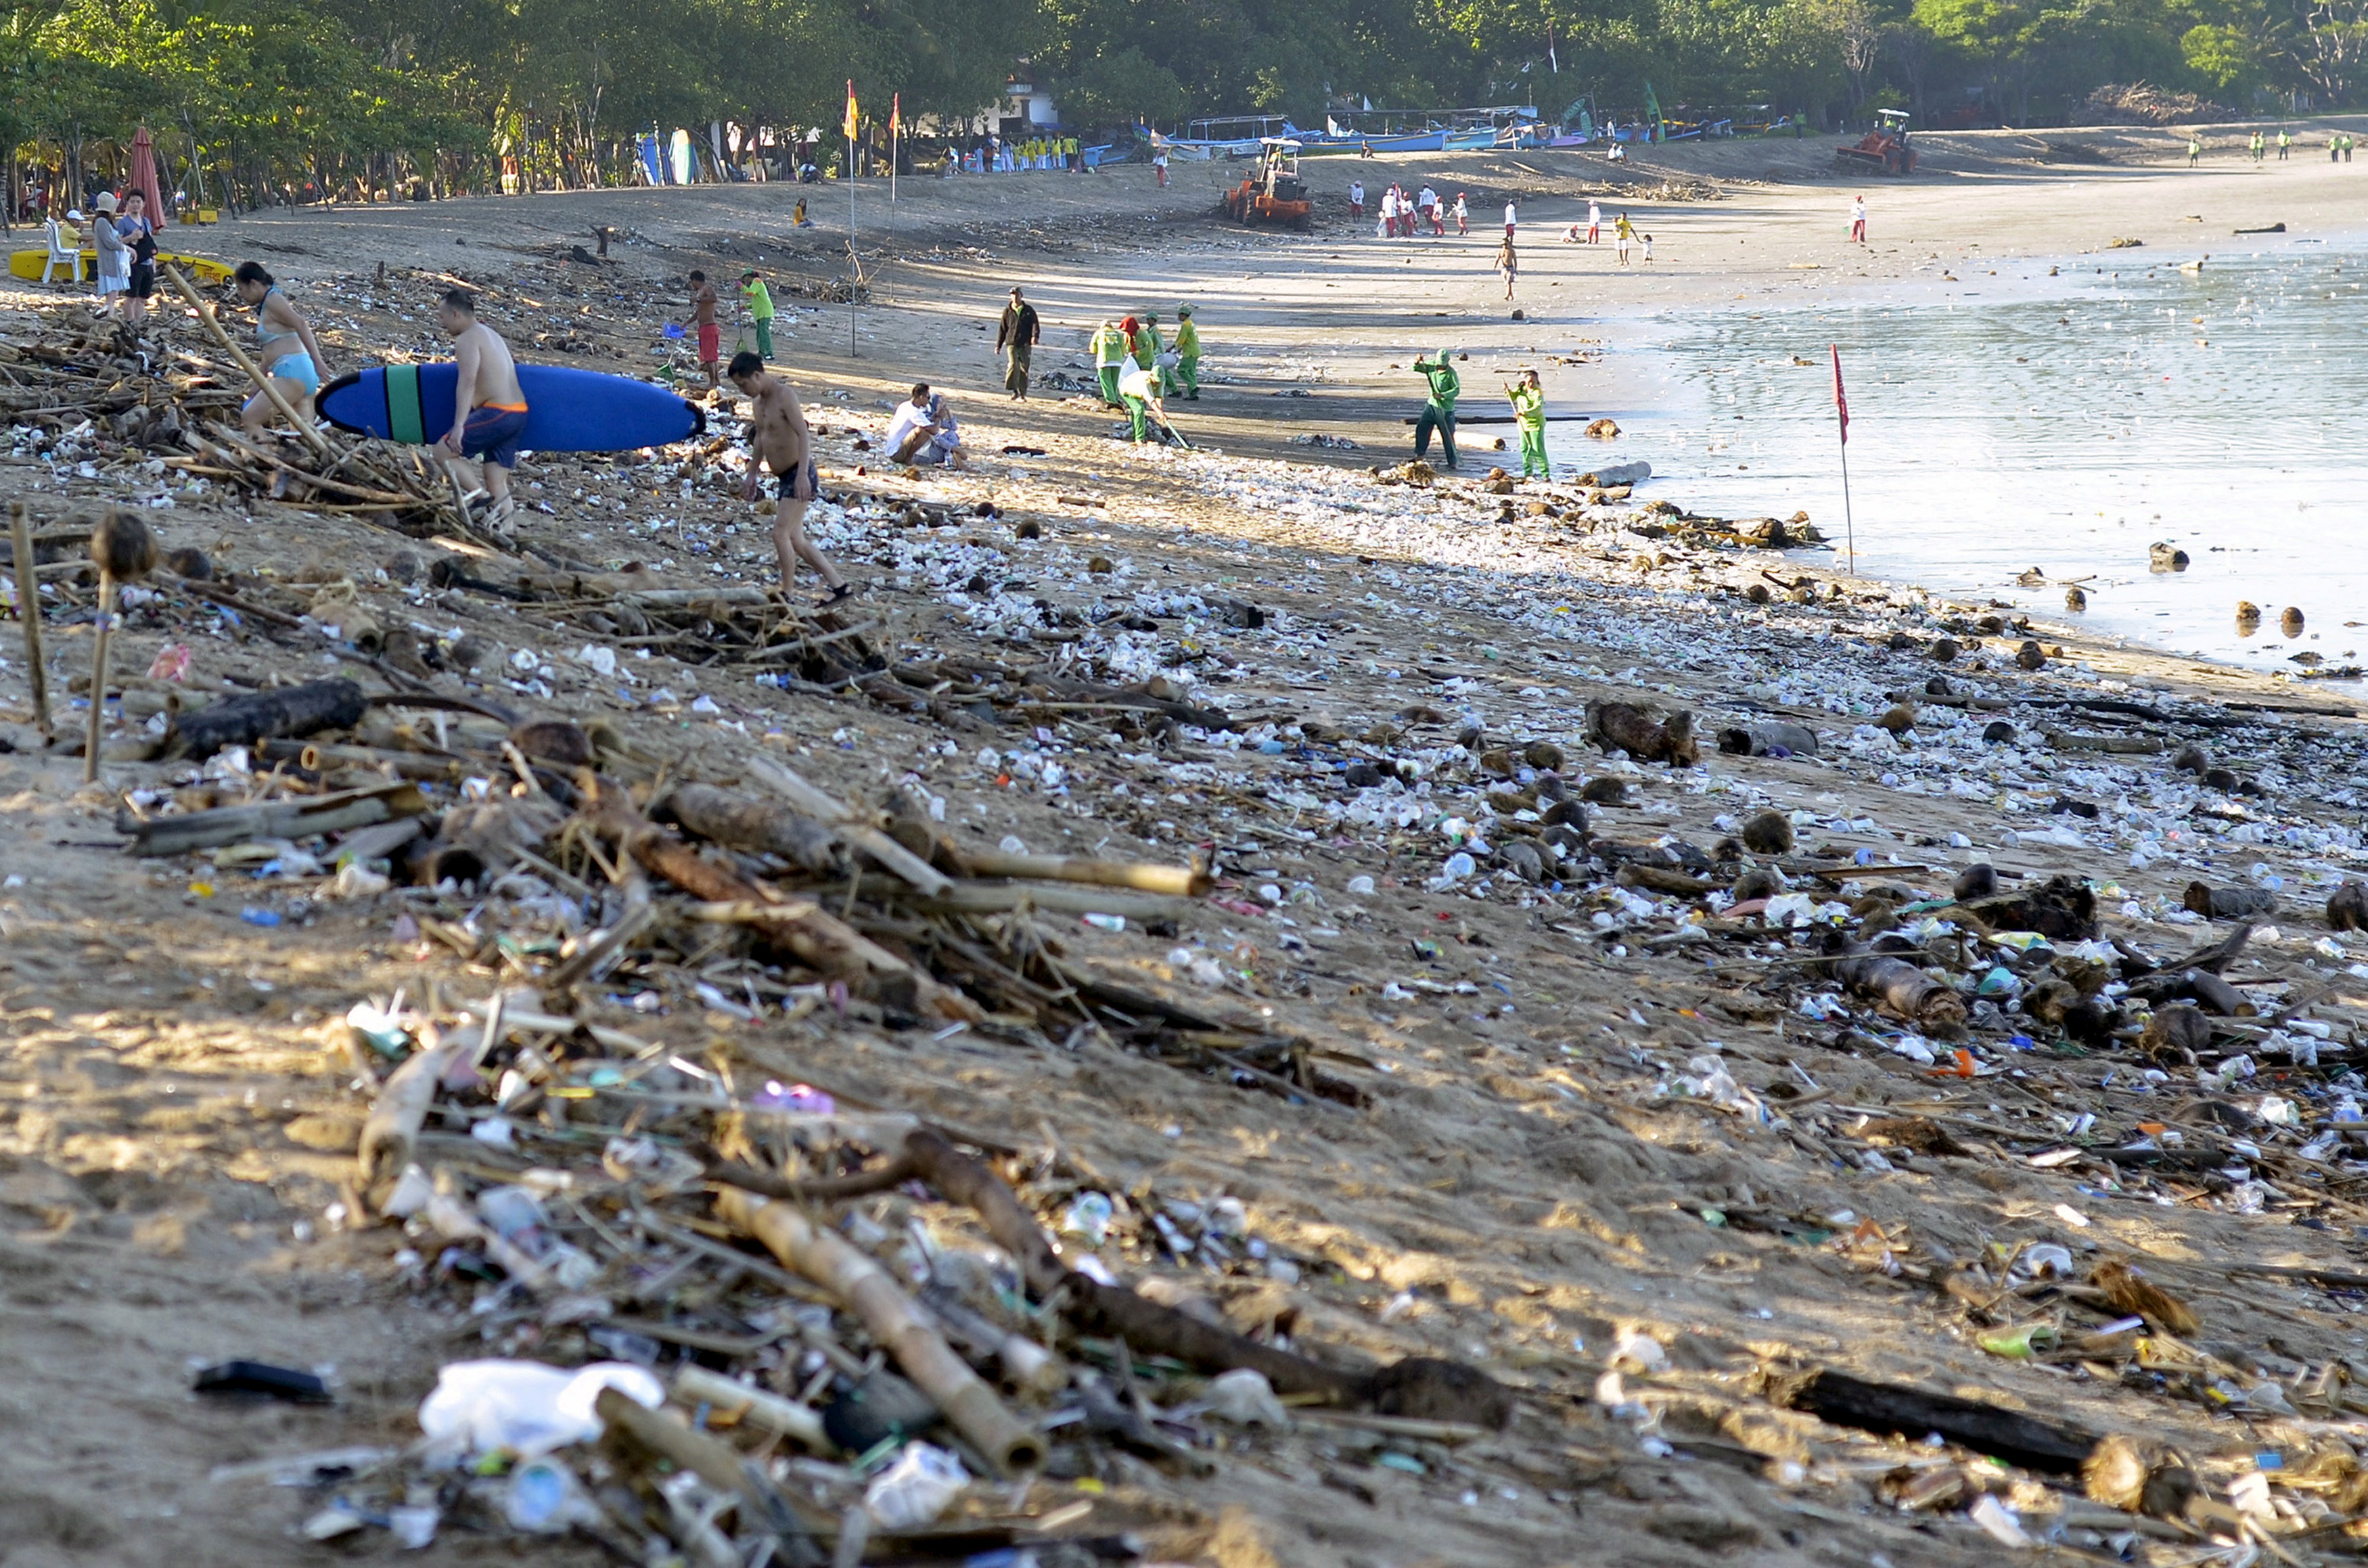 FILE PHOTO: Tourists walk amongst trash washed up on Kuta beach by seasonal winds, as workers attempt a clean-up in the background, on the Indonesian island of Bali February 15, 2016 in this photo taken by Antara Foto. REUTERS/Wira Suryantala/Antara Foto